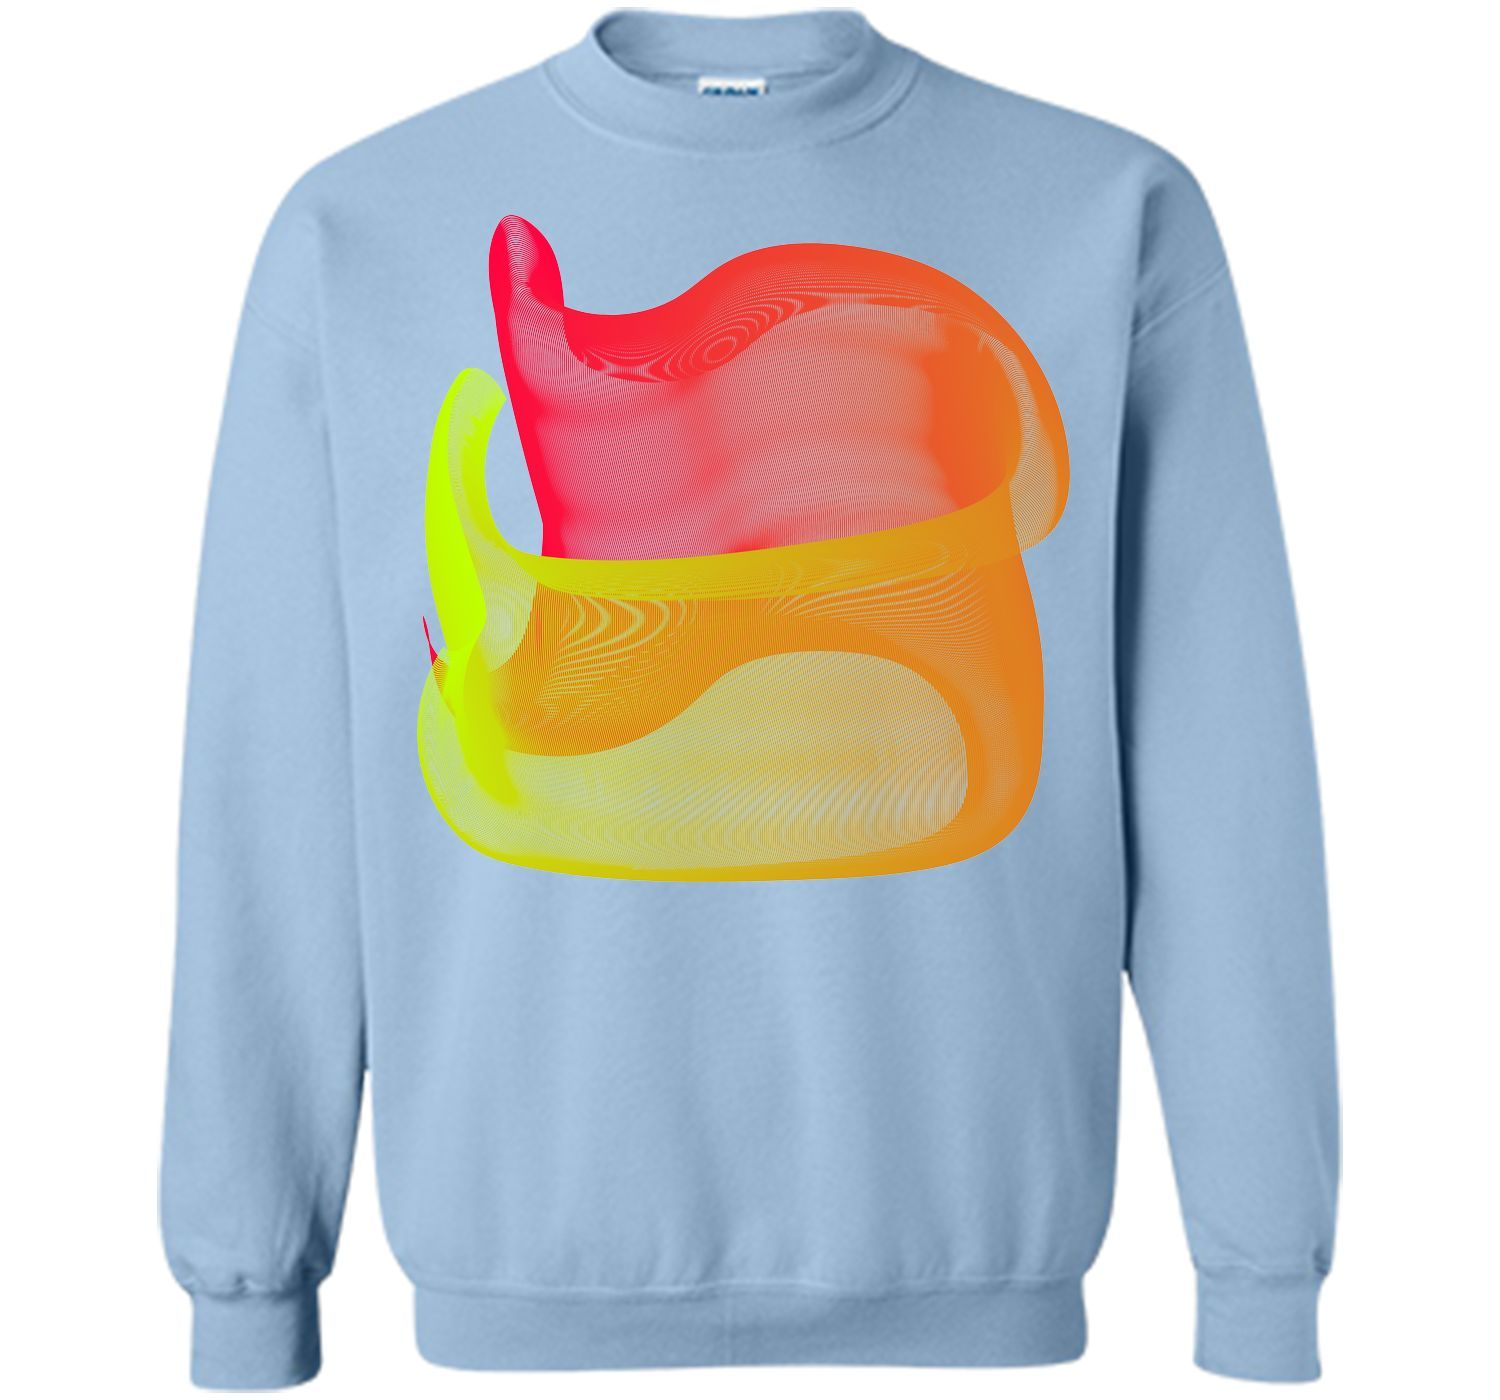 admirable blending art definition 2017 t shirt products